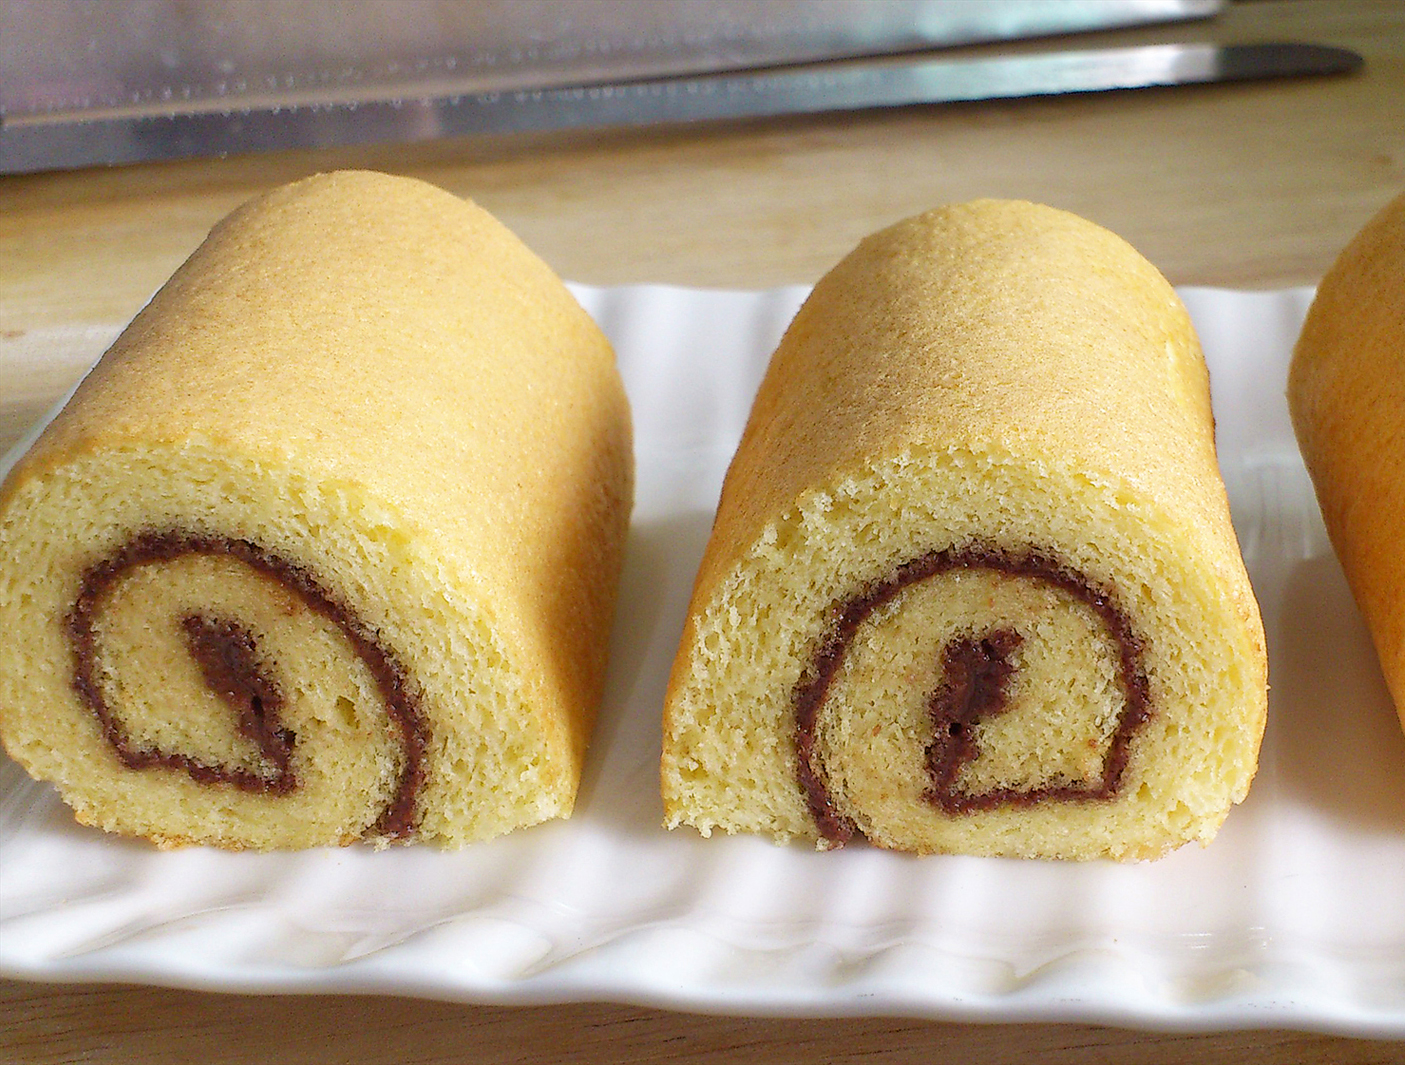 vanilla swiss roll with chocolate filling